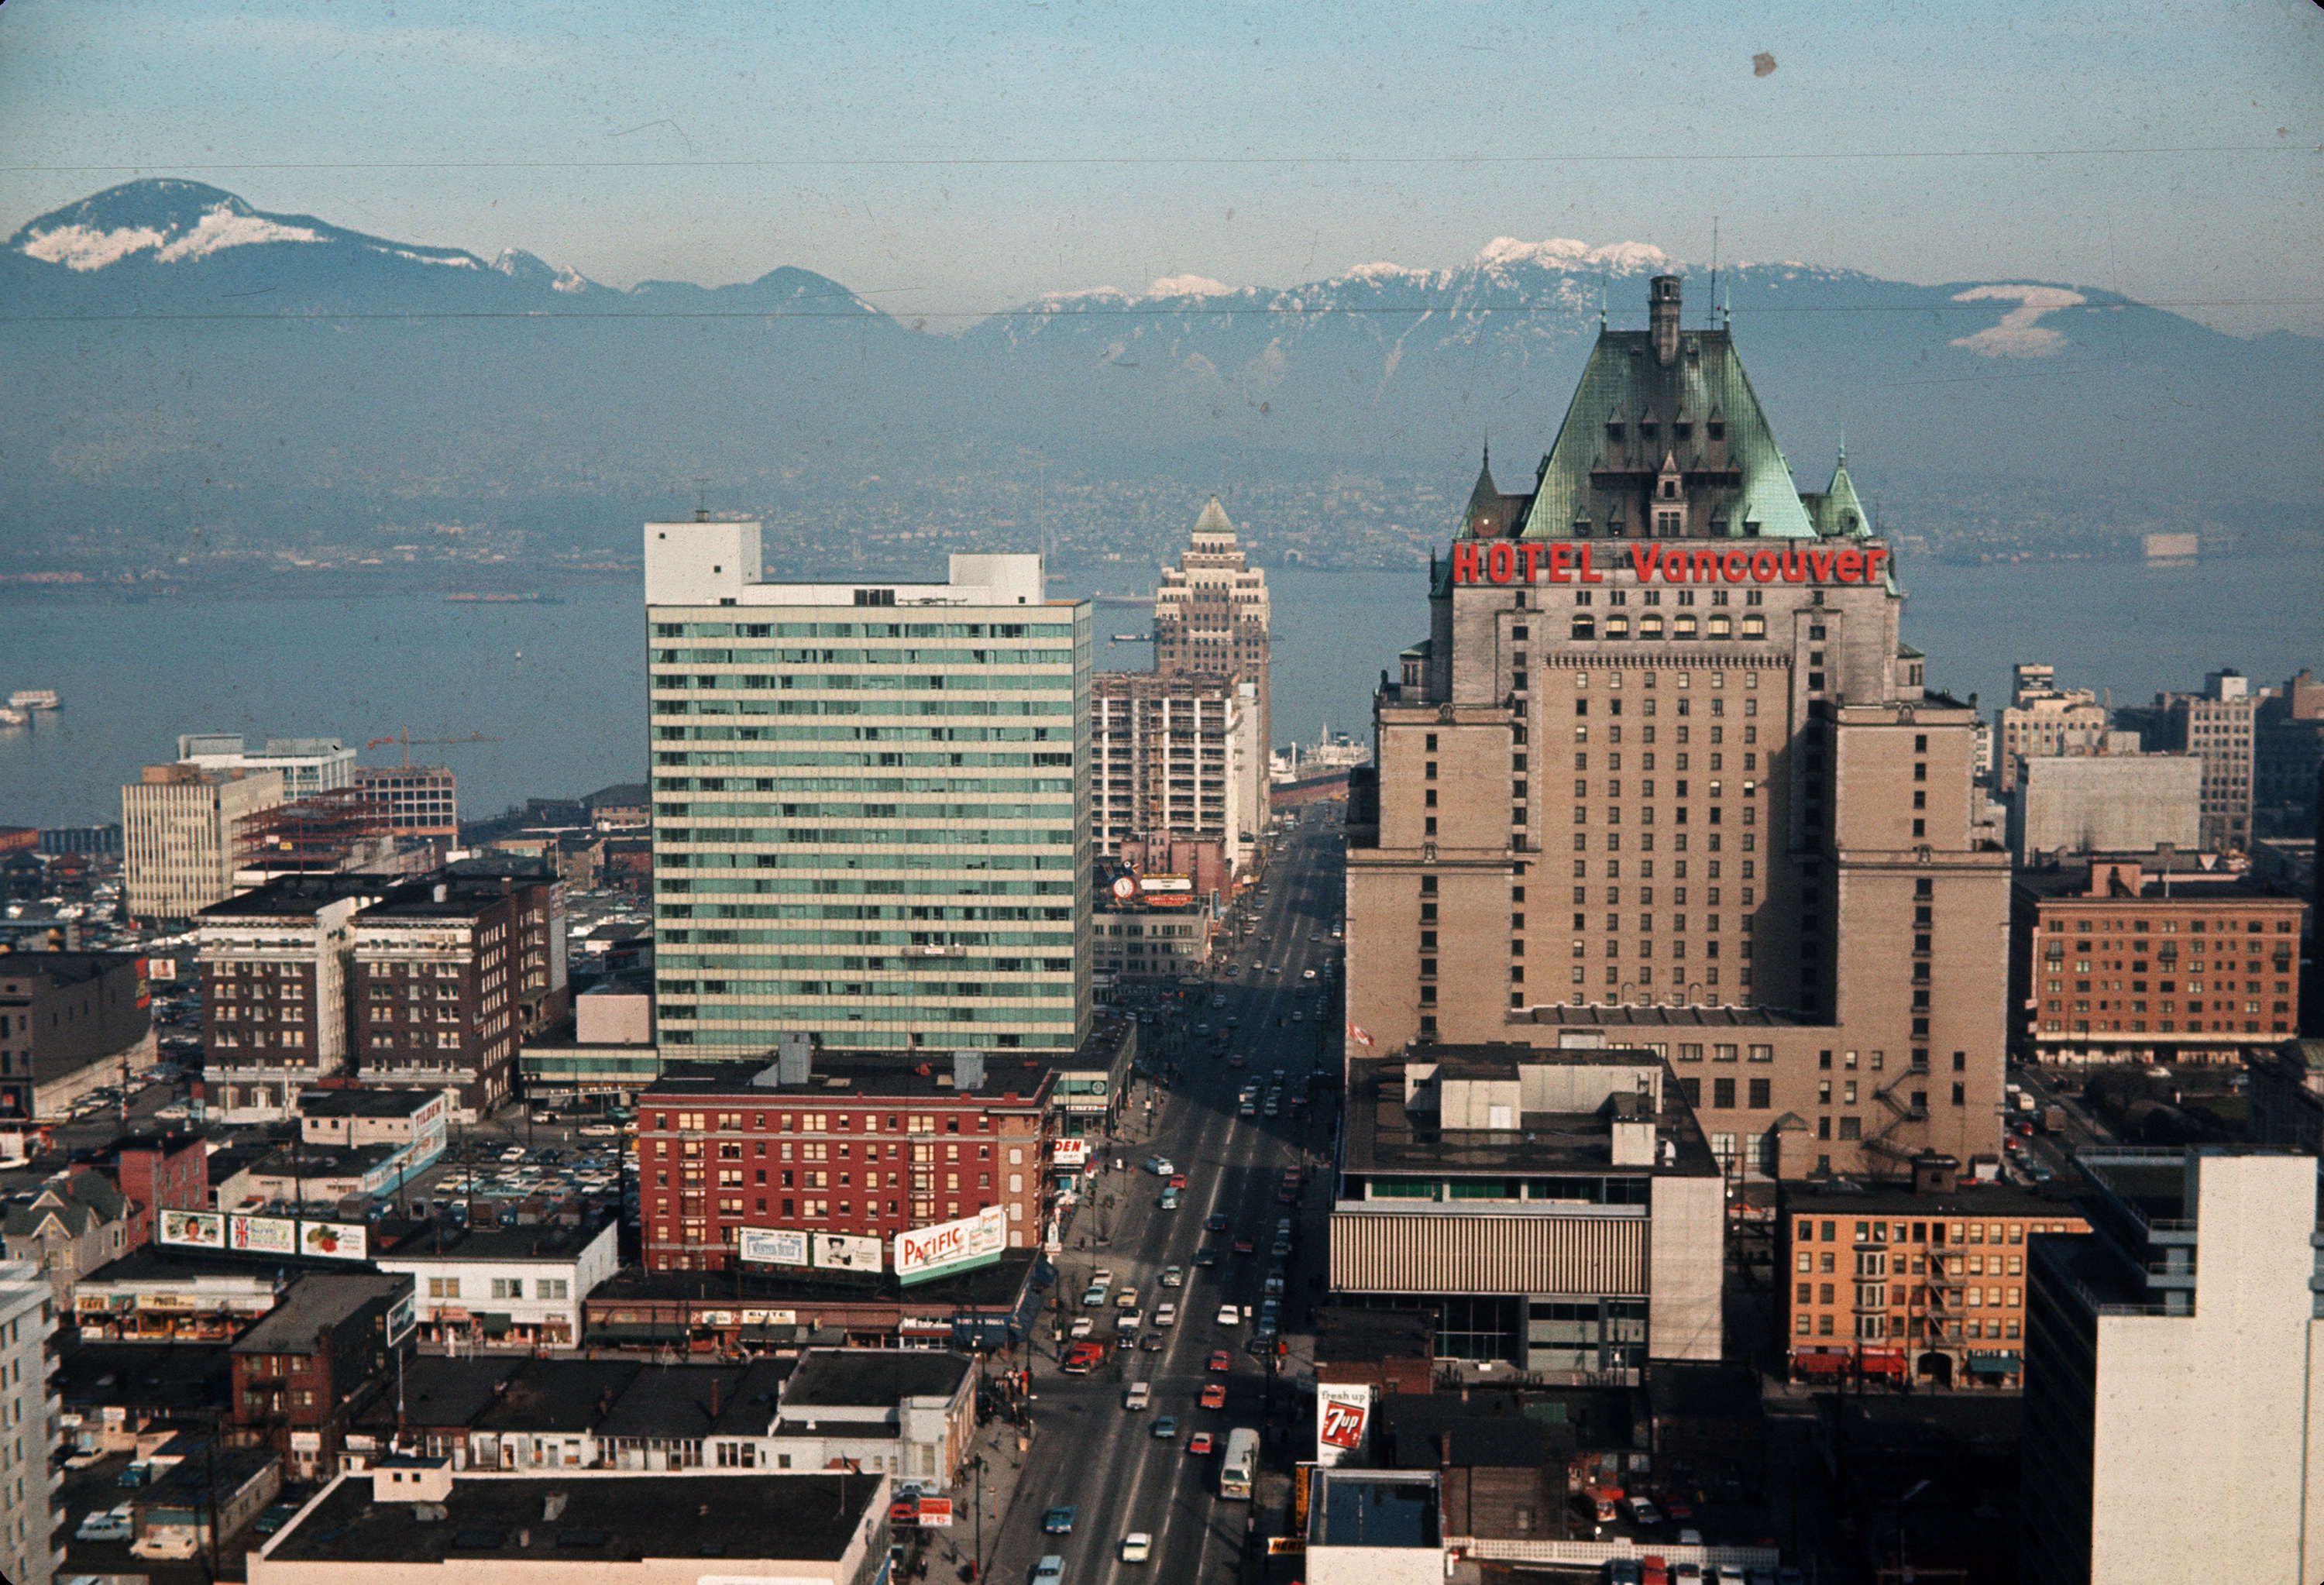 Color printing downtown vancouver - Clic Here For Full Photo